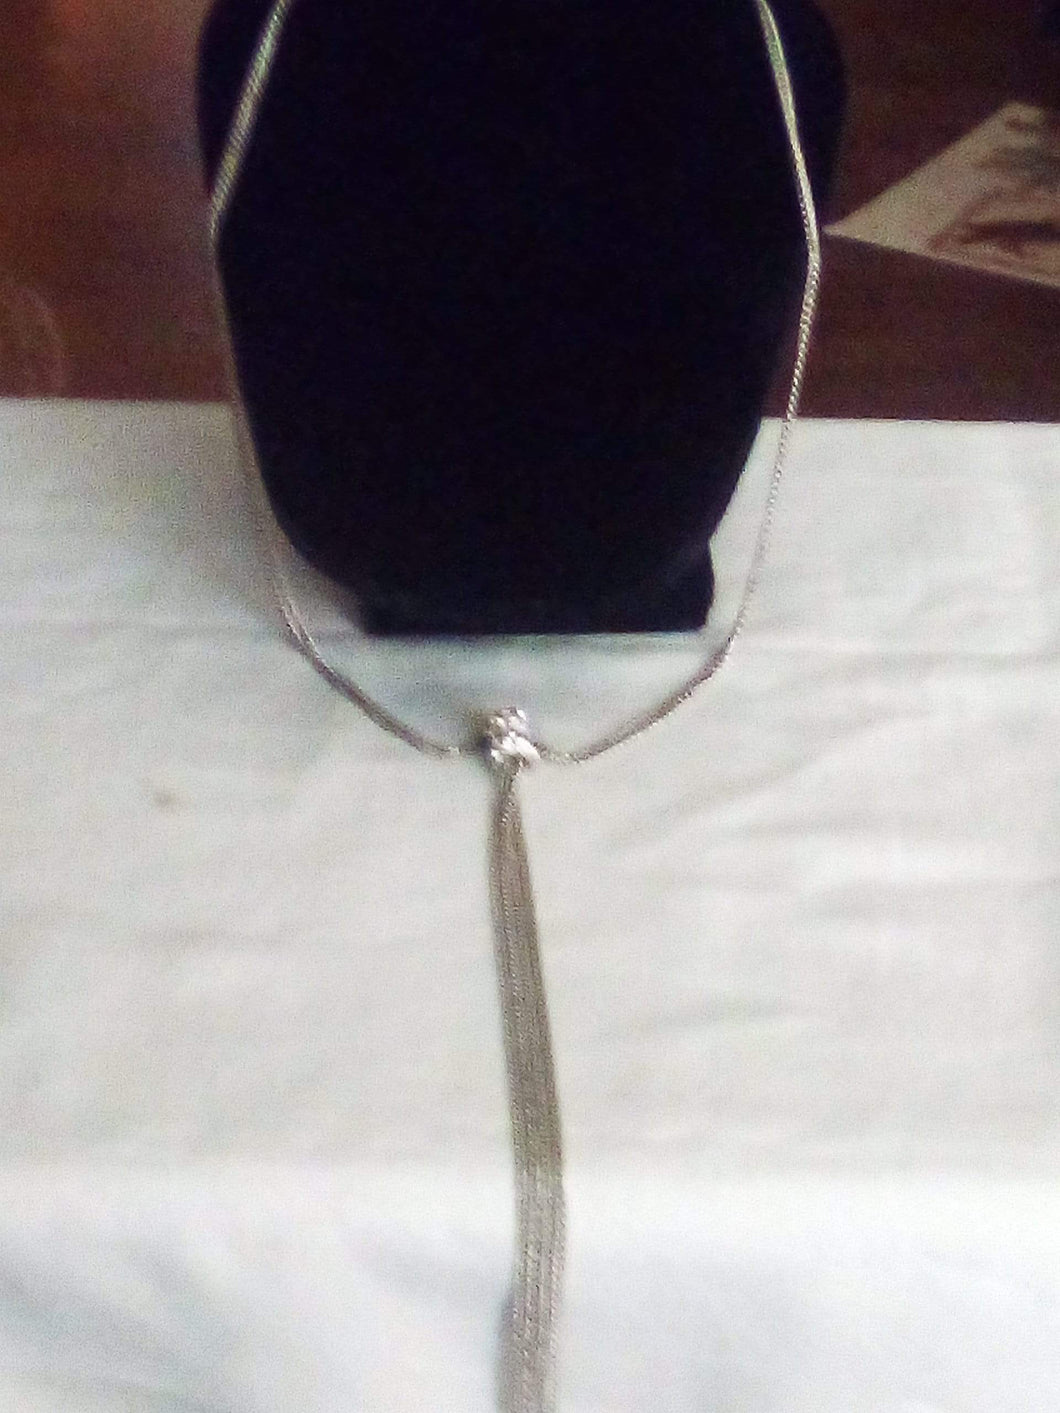 A silver tone dressy necklace - B&P'sringsnthings